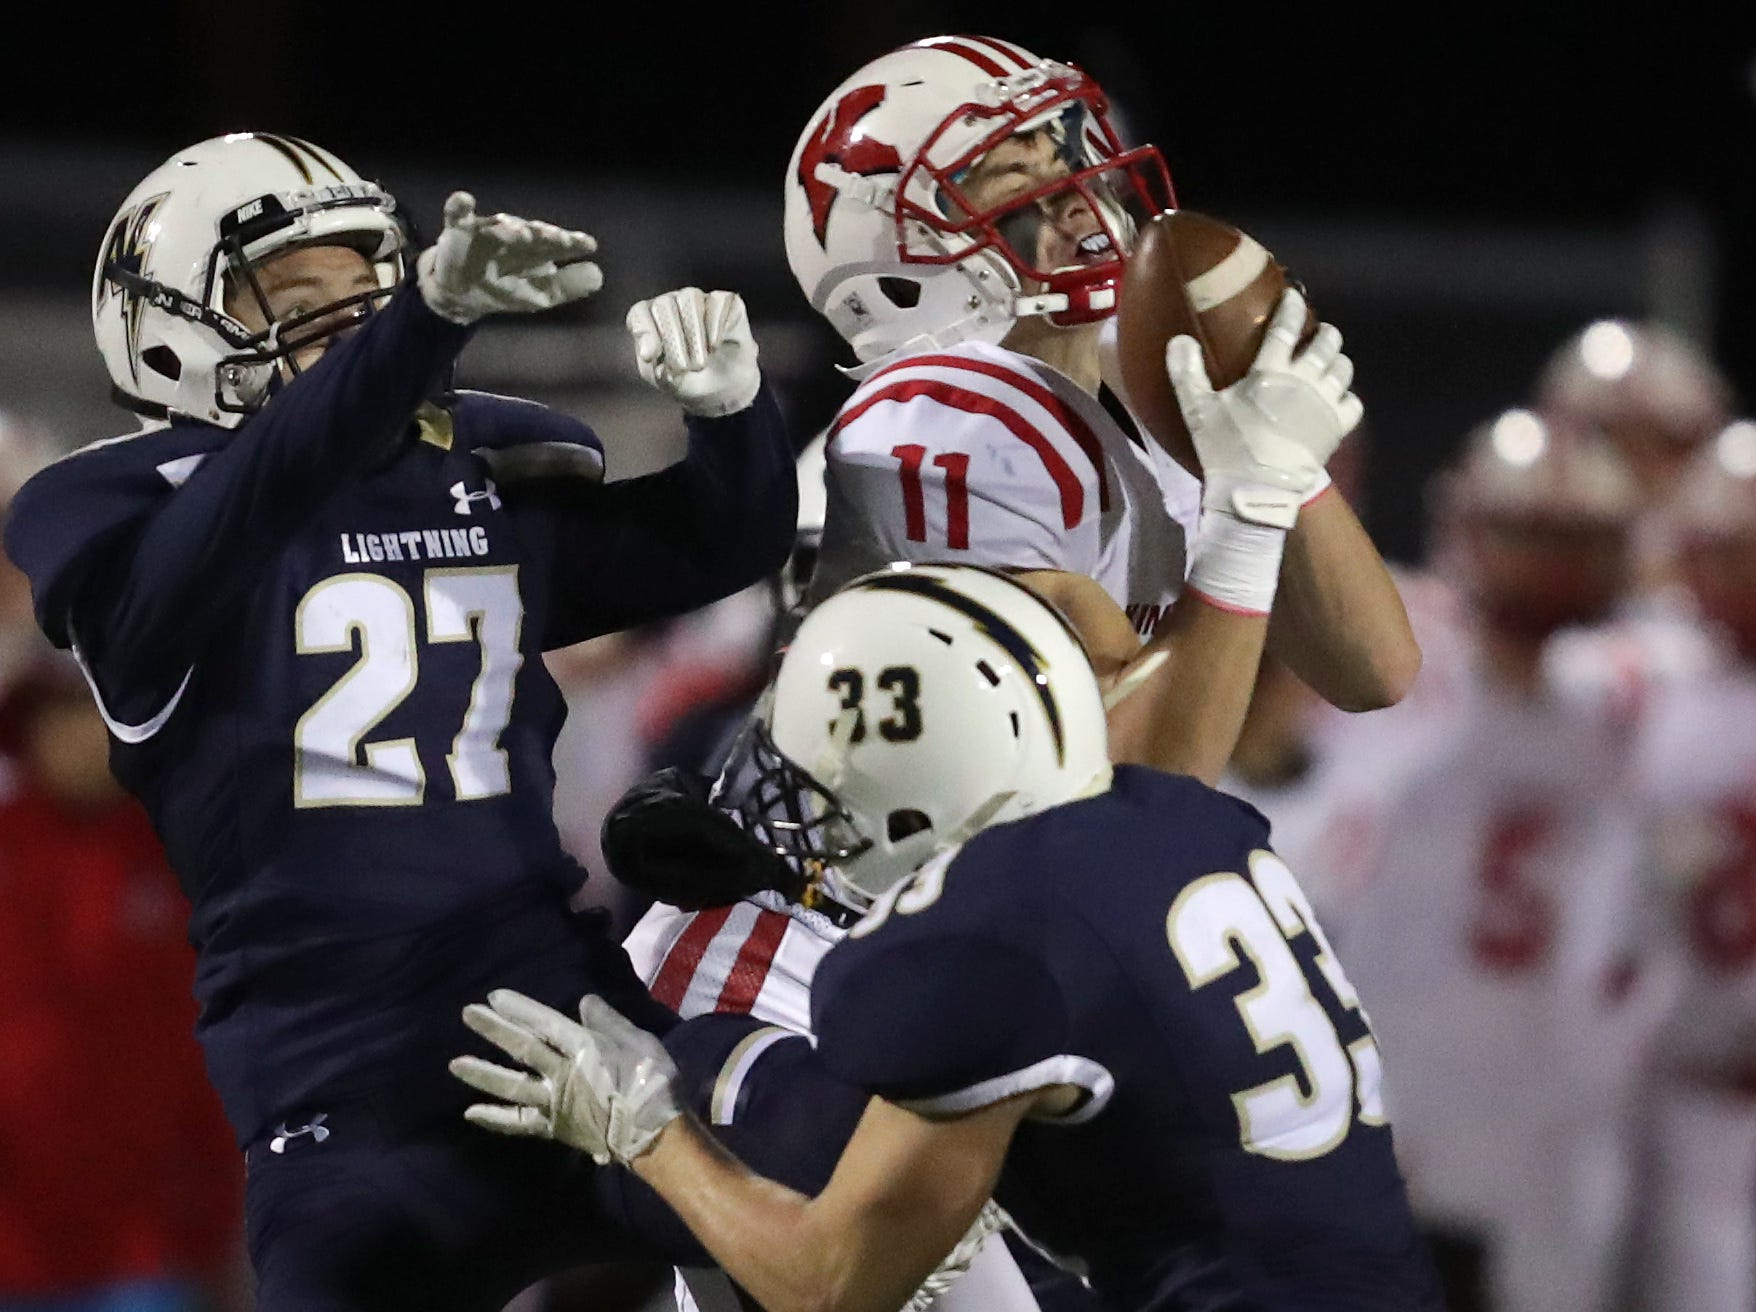 Kimberly High School's #11 Conner Wnek catches a pass over the defense of Appleton North High School's #27 Tyler Birling and #33 Devin Blom during their football game on Friday, September 28, 2018, at Paul Engen Field in Appleton, Wis. Kimberly defeated North 35 to 25Wm. Glasheen/USA TODAY NETWORK-Wisconsin.